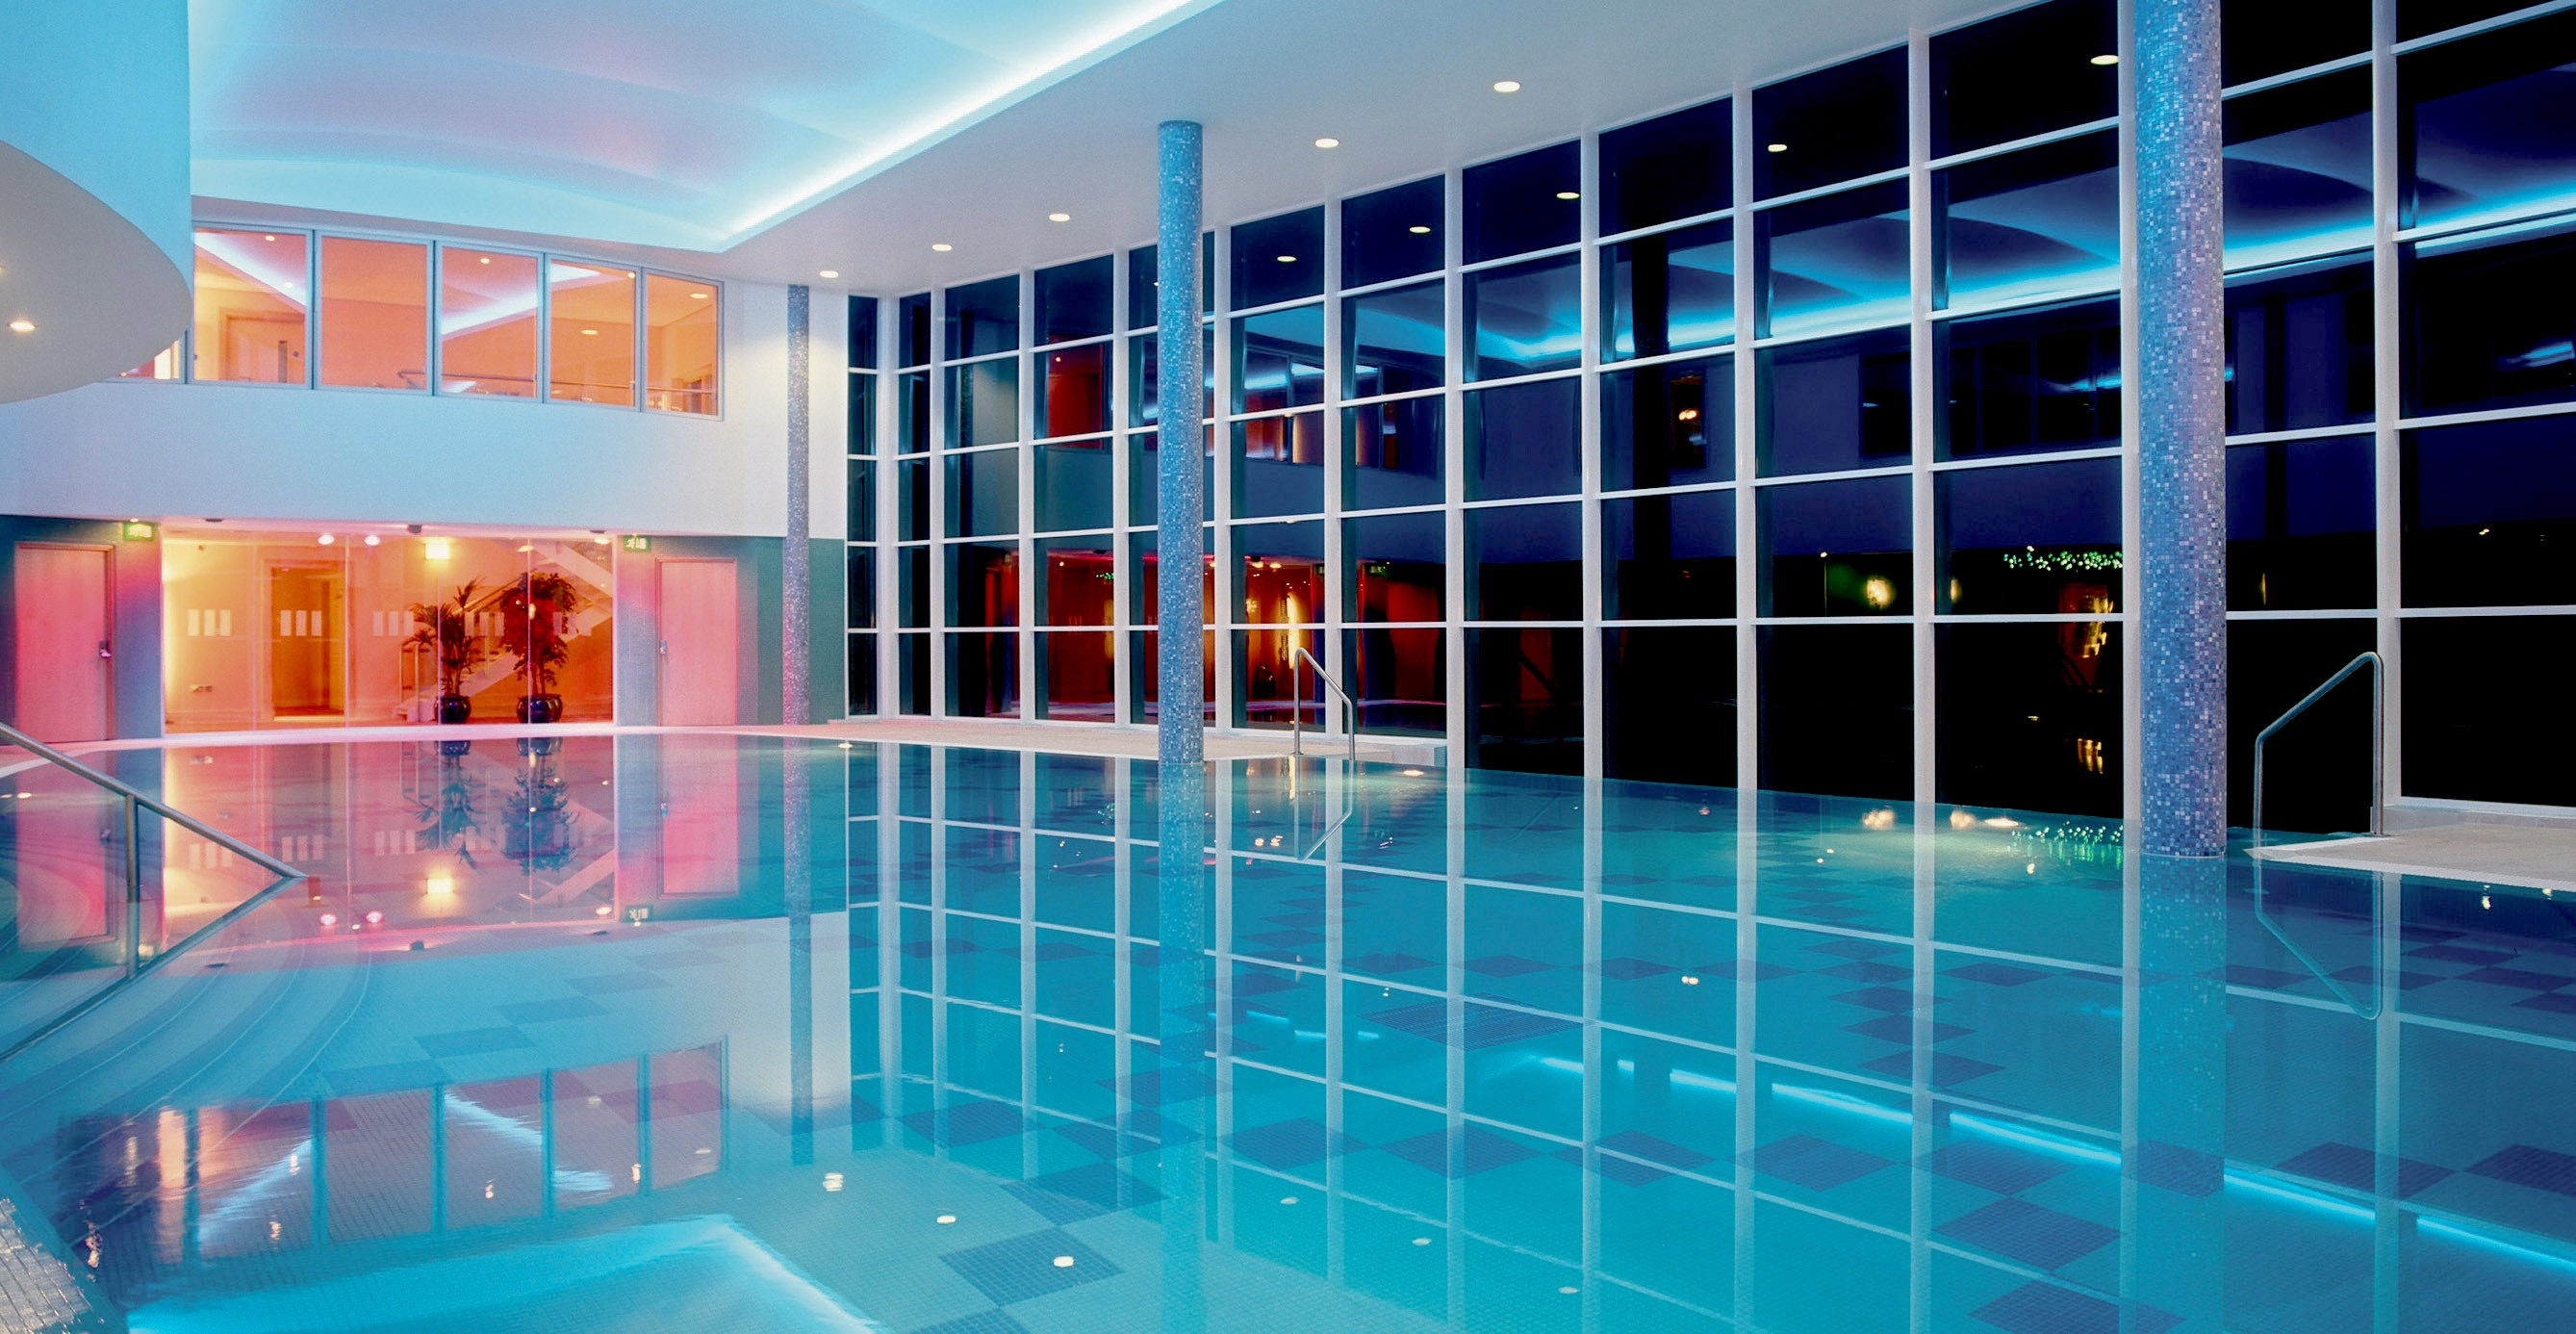 The pool at Stobo Castle Spa